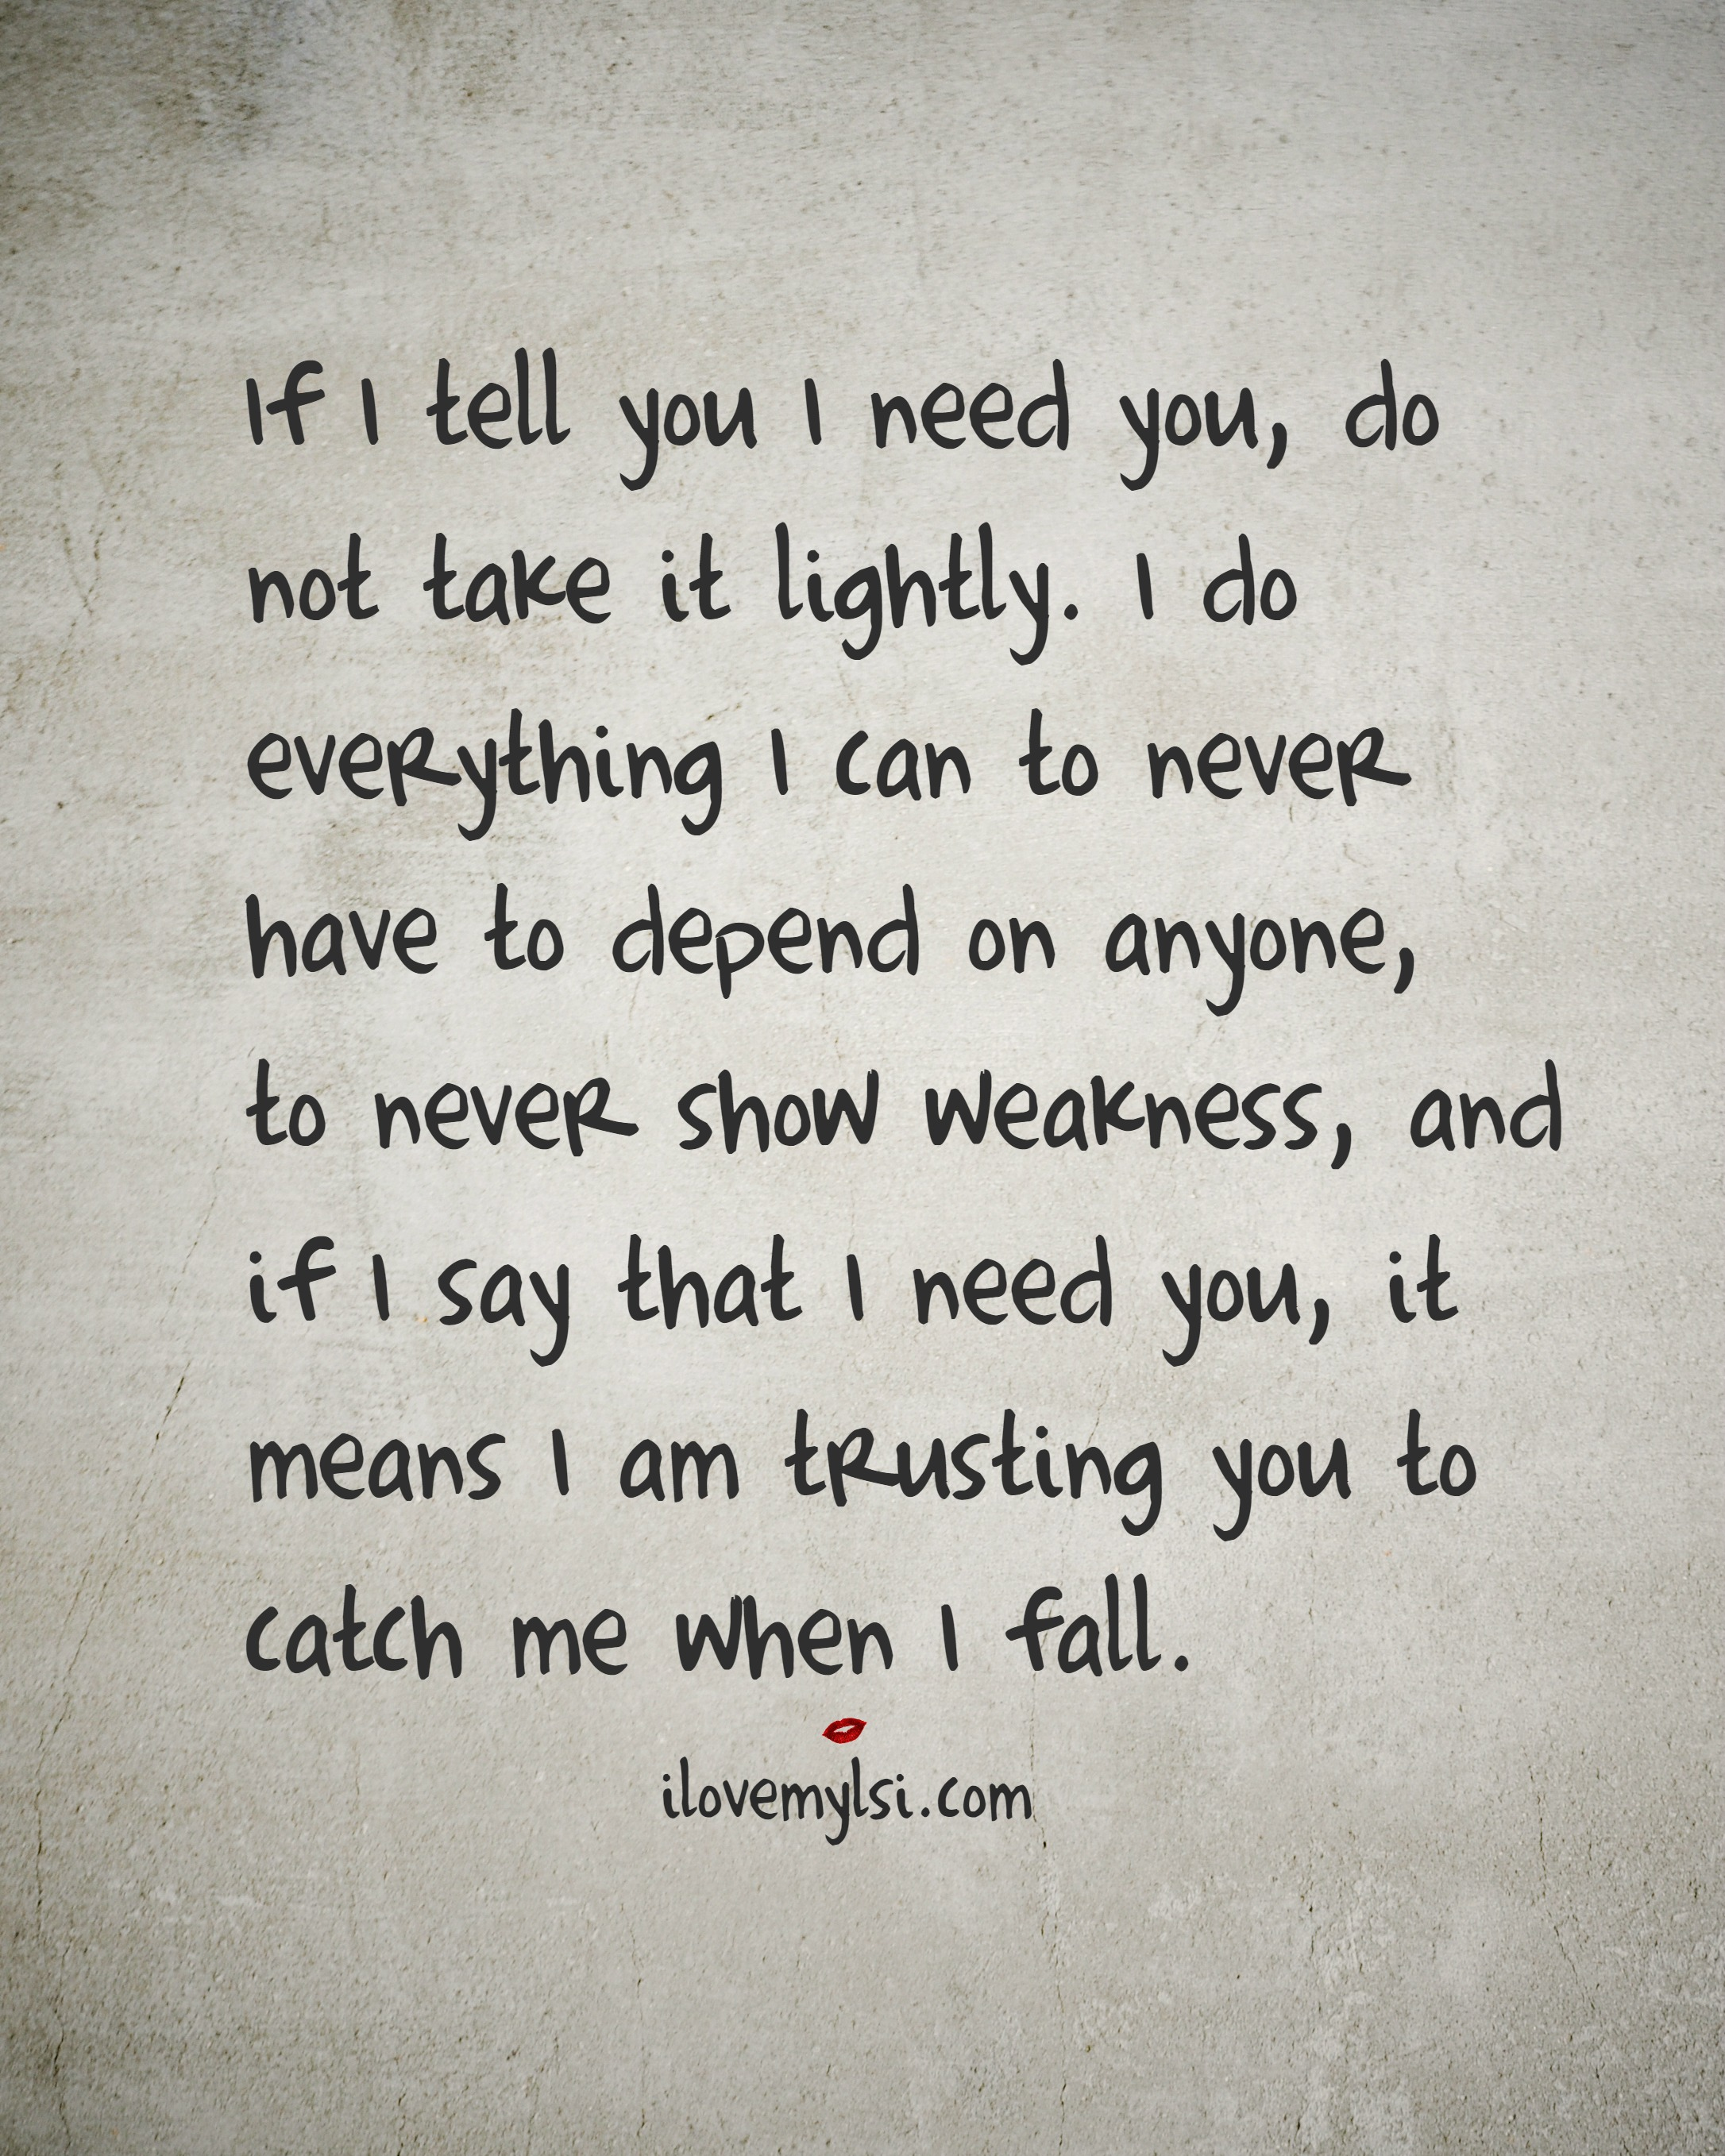 I Need You Quotes For Him: If I Tell You I Need You Do Not Take It Lightly